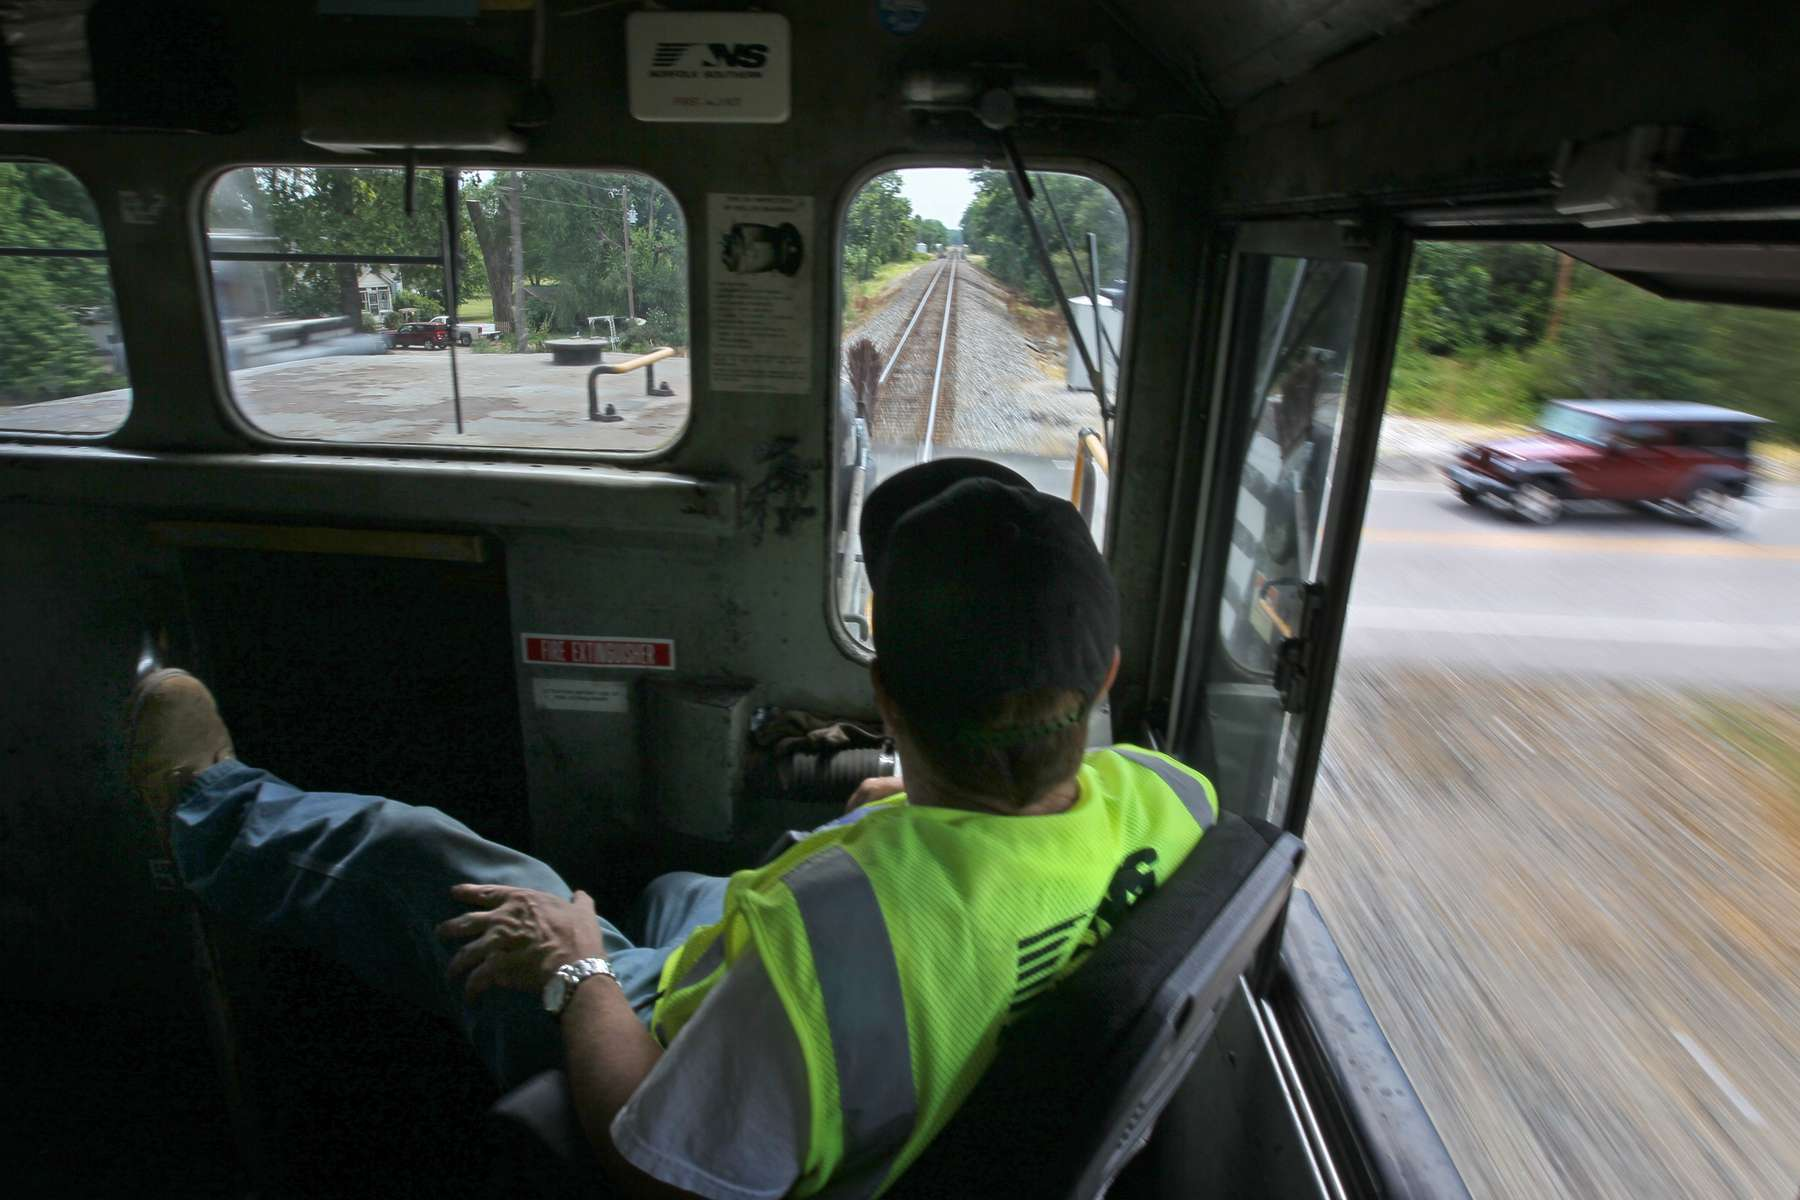 Conductor Doug Lanier keeps an eye out the front window of a train as it rolls through a street crossing in O'Fallon, Mo. on Wednesday July 11, 2012.  The train ride Lanier was on was part of training ride for police officers taking part in an Operation Lifesaver training session.  Photo By David Carson, dcarson@post-dispatch.com